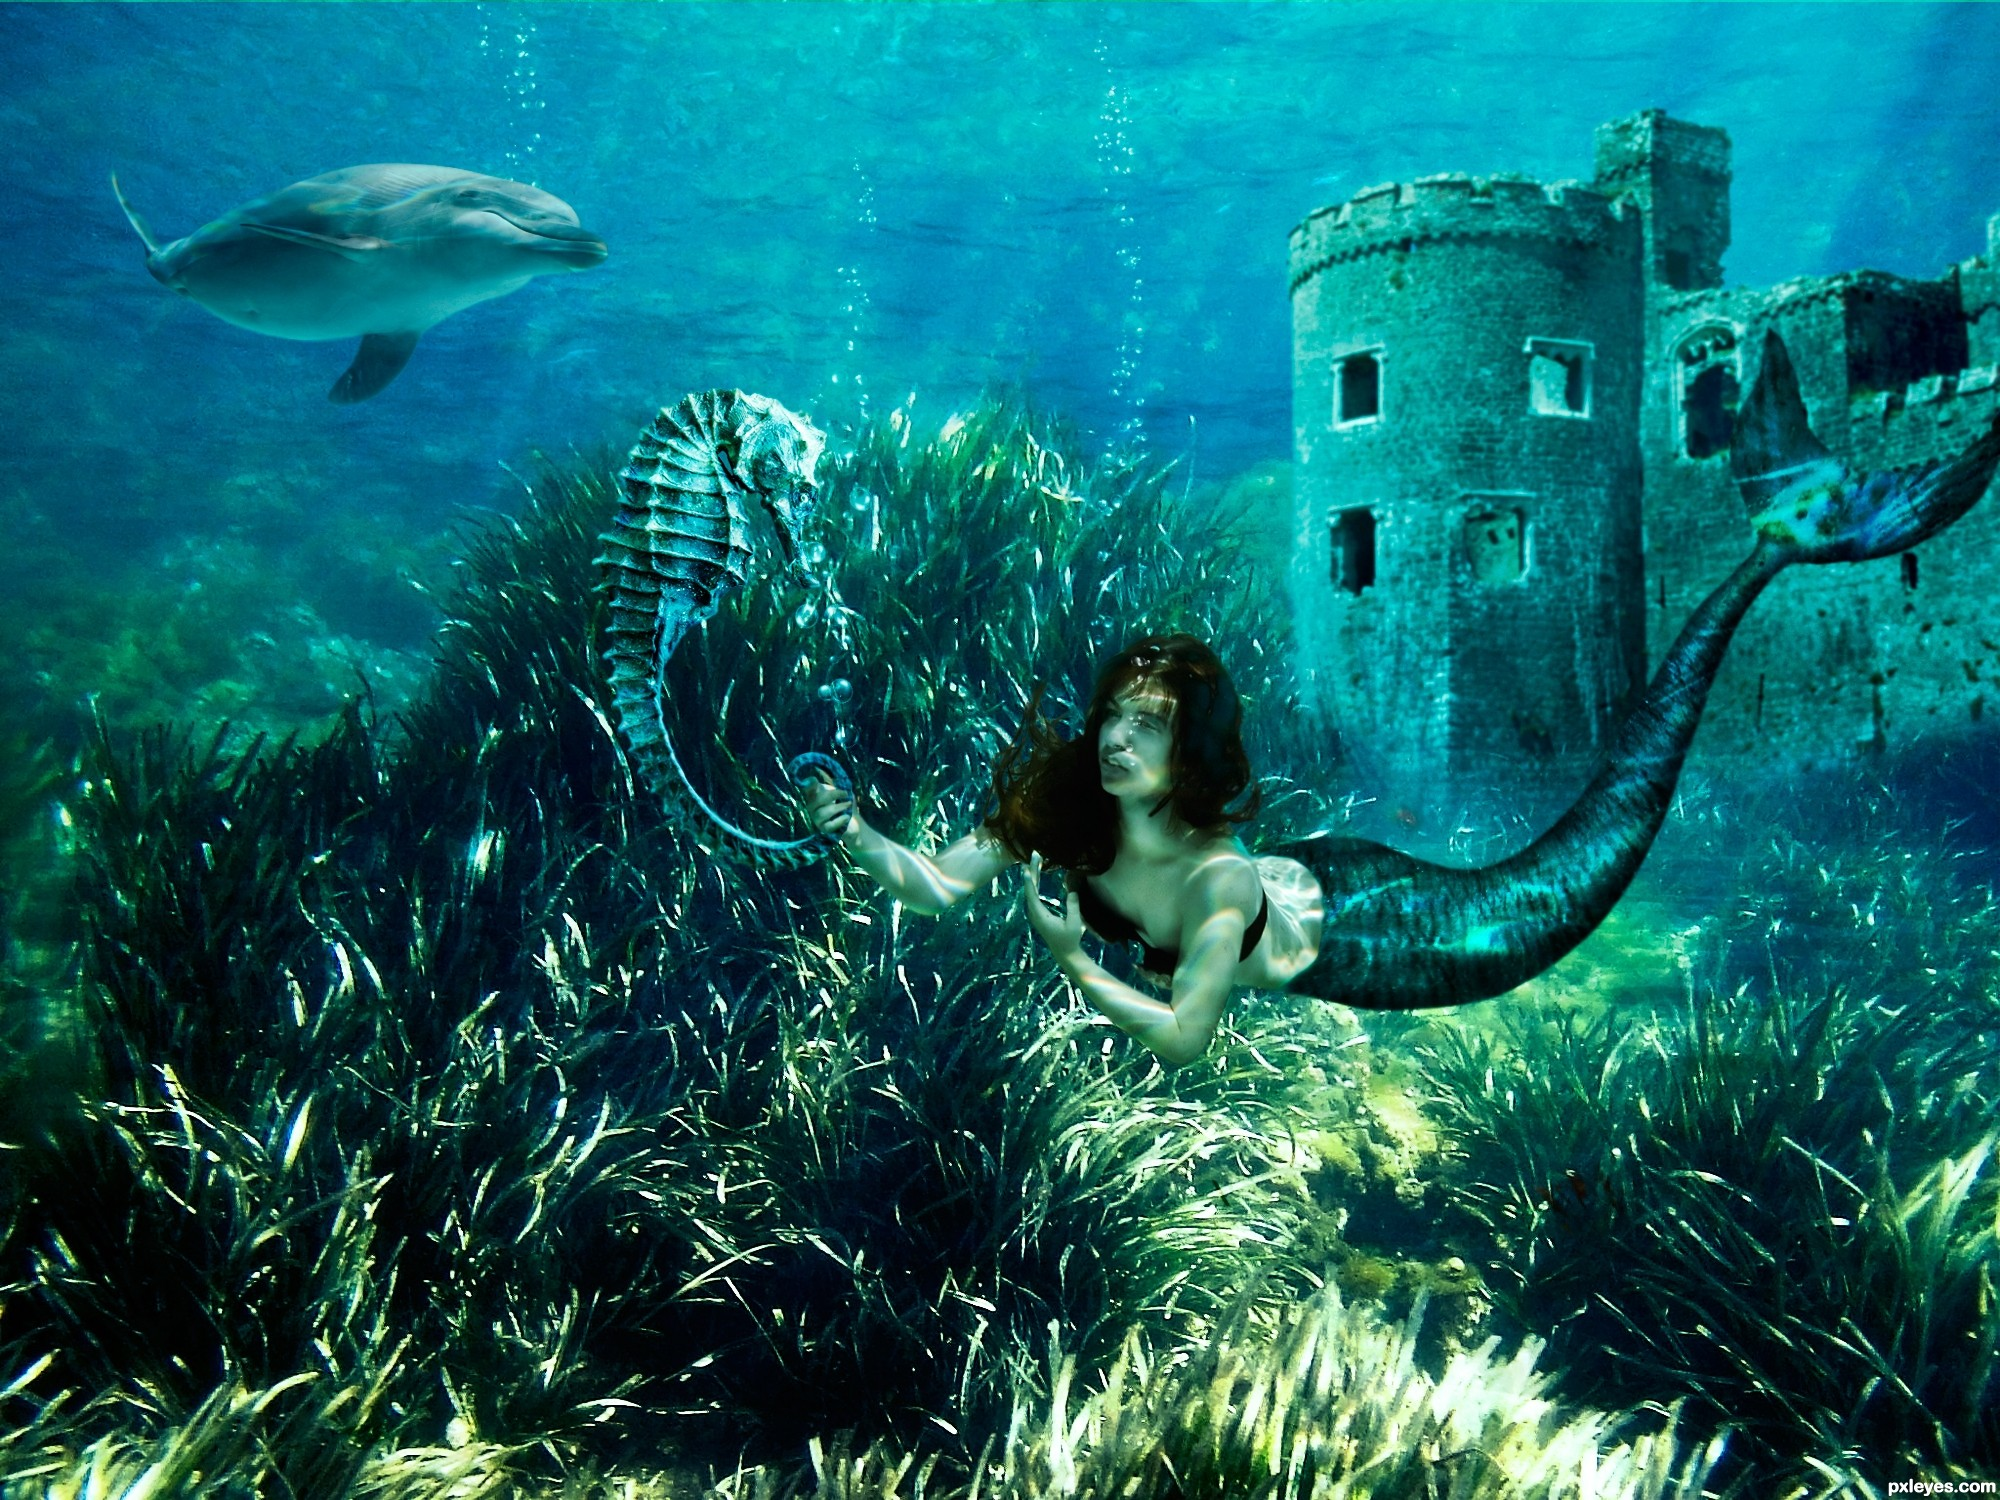 Forgotten underwater kingdom picture, by divair for: the kingdom